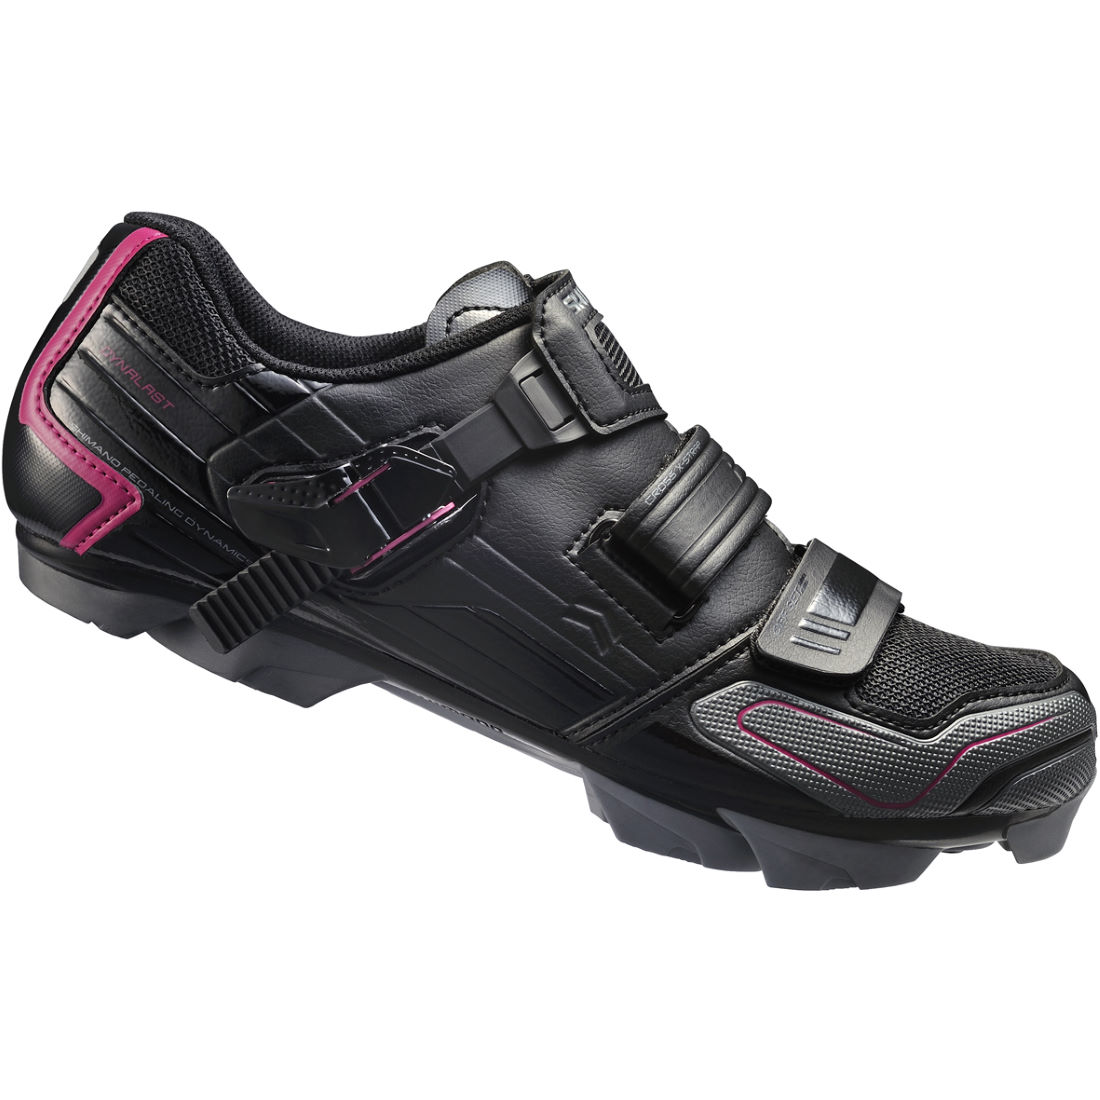 Simple Of The Different Attachment Methods For Clipless Shoes, SPD Cleats By Shimano Are  You Can Get Them In Mens And Womens For &1638999 From Tredzcouk With Free Delivery They Are Probably The Most Urban Cycling Shoes You Can Get